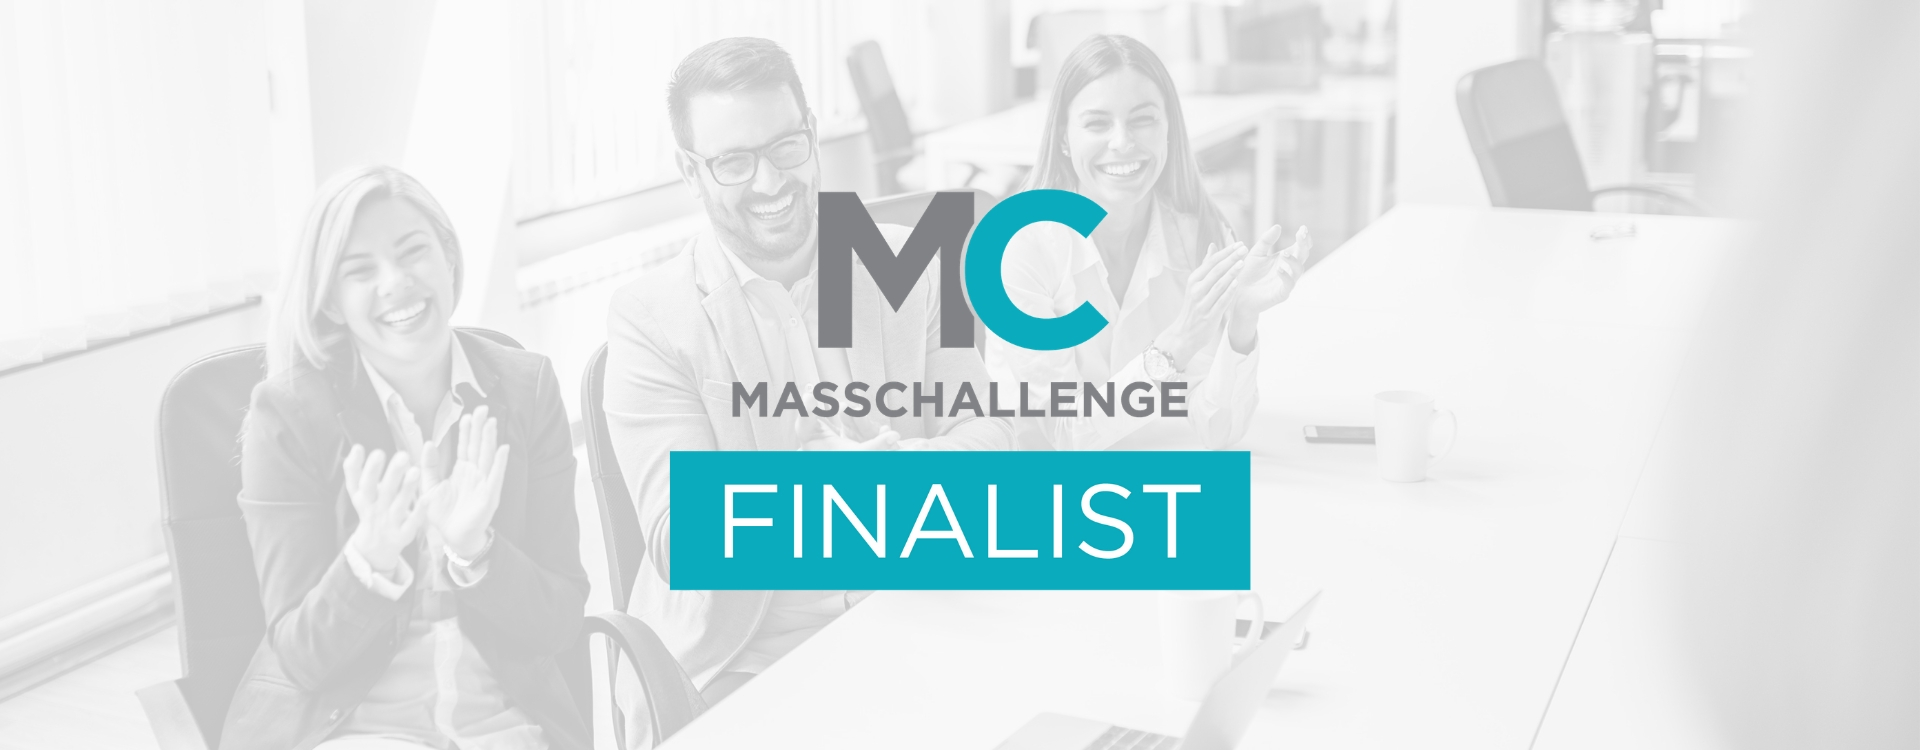 https://www.talentondemand.com.mx/wp-content/uploads/2019/08/Copy-of-masschallenge.jpg